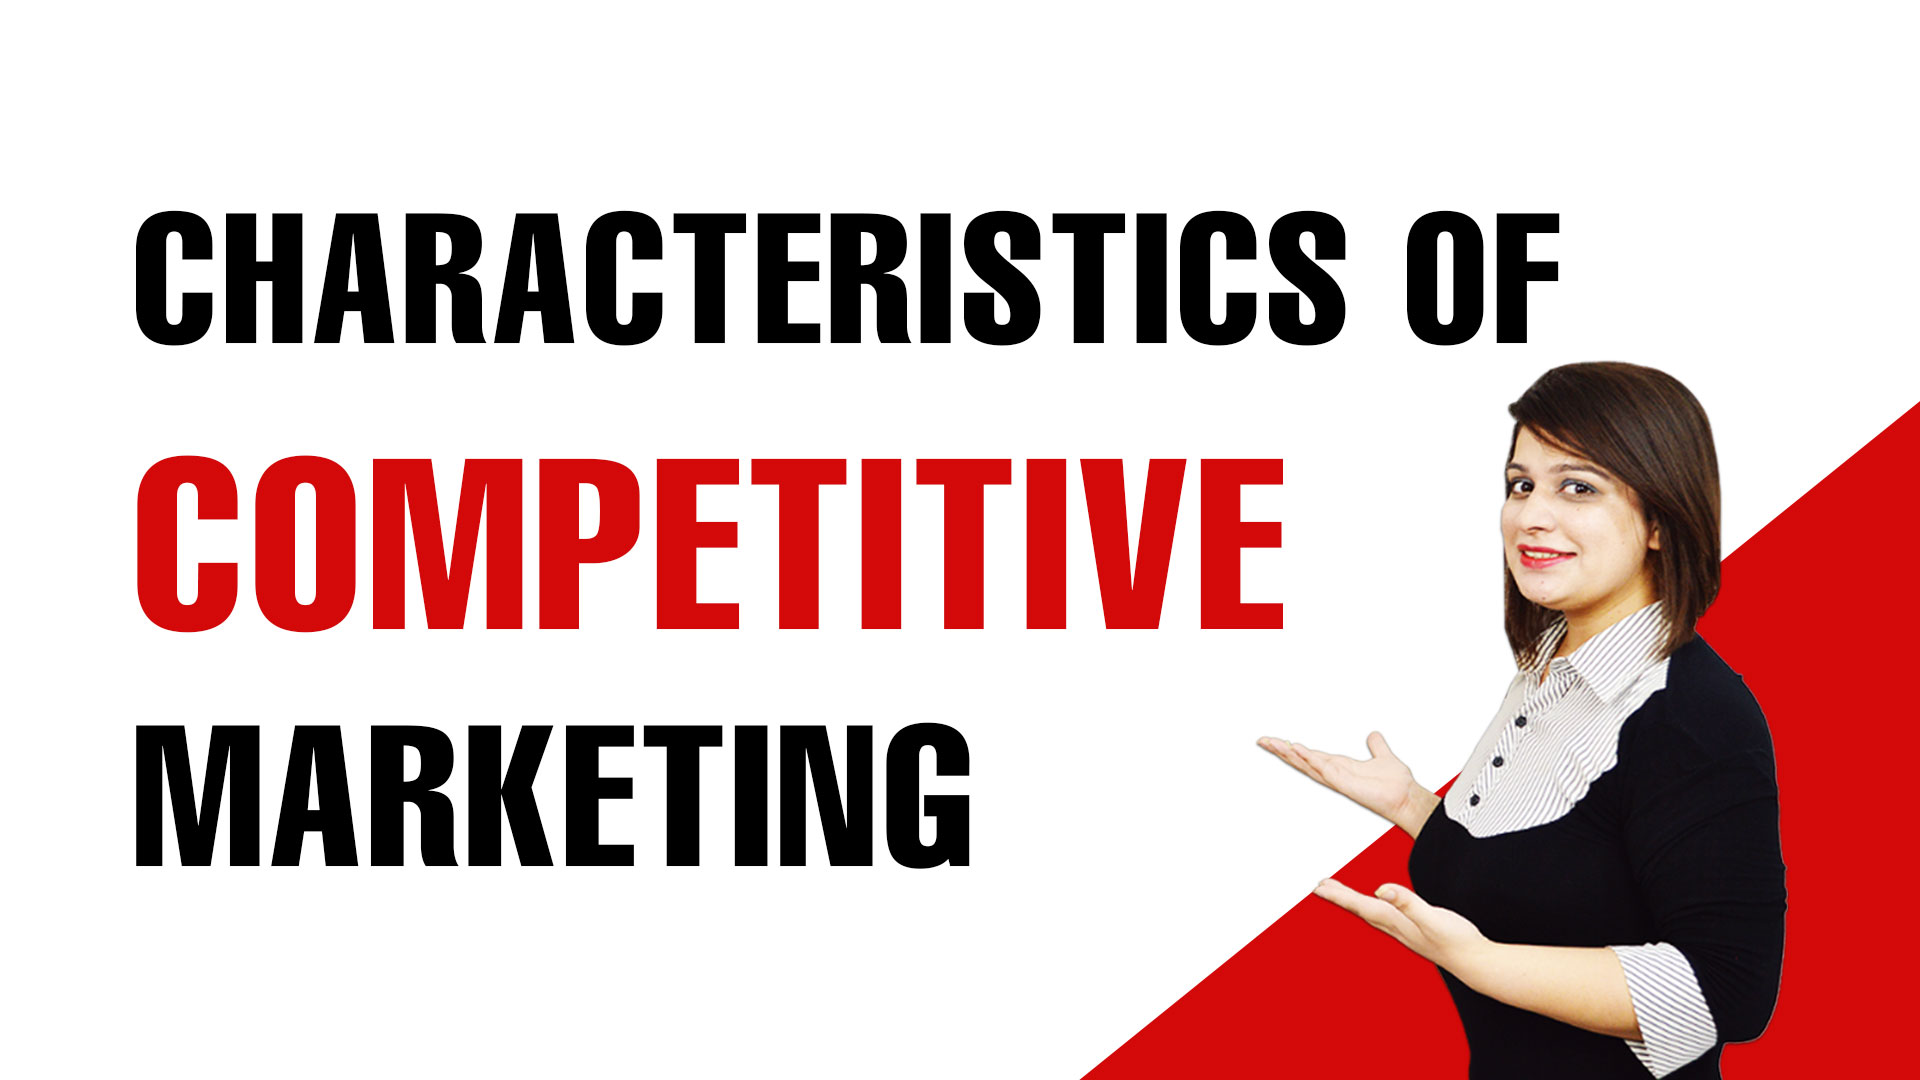 Characteristics of competitive marketing